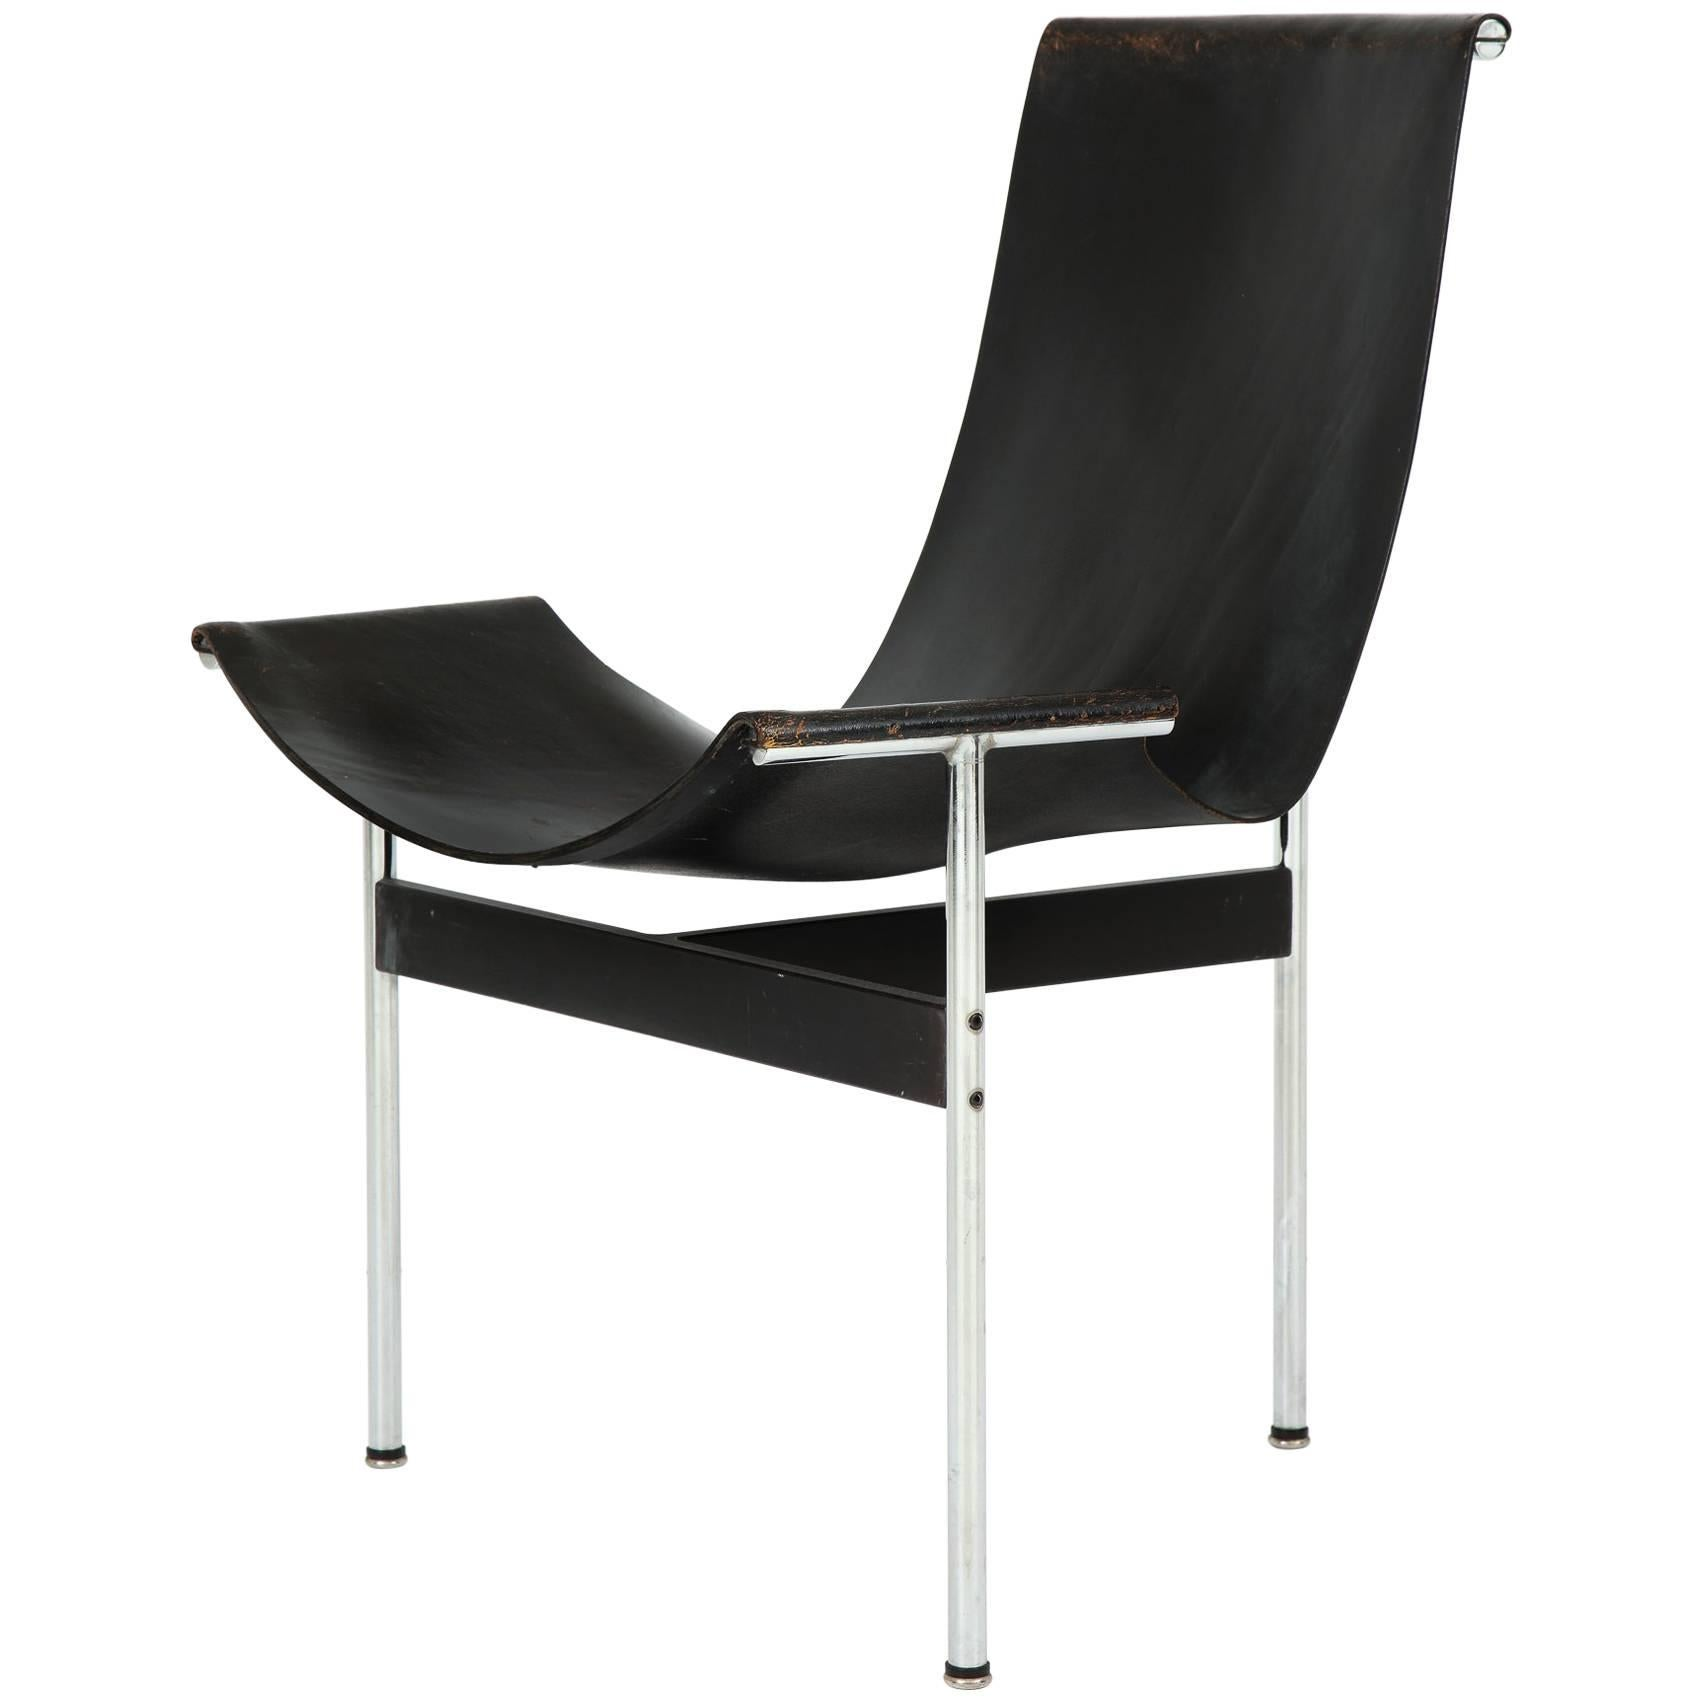 Laverne T-Chair by Katavolos, Littell and Kelley